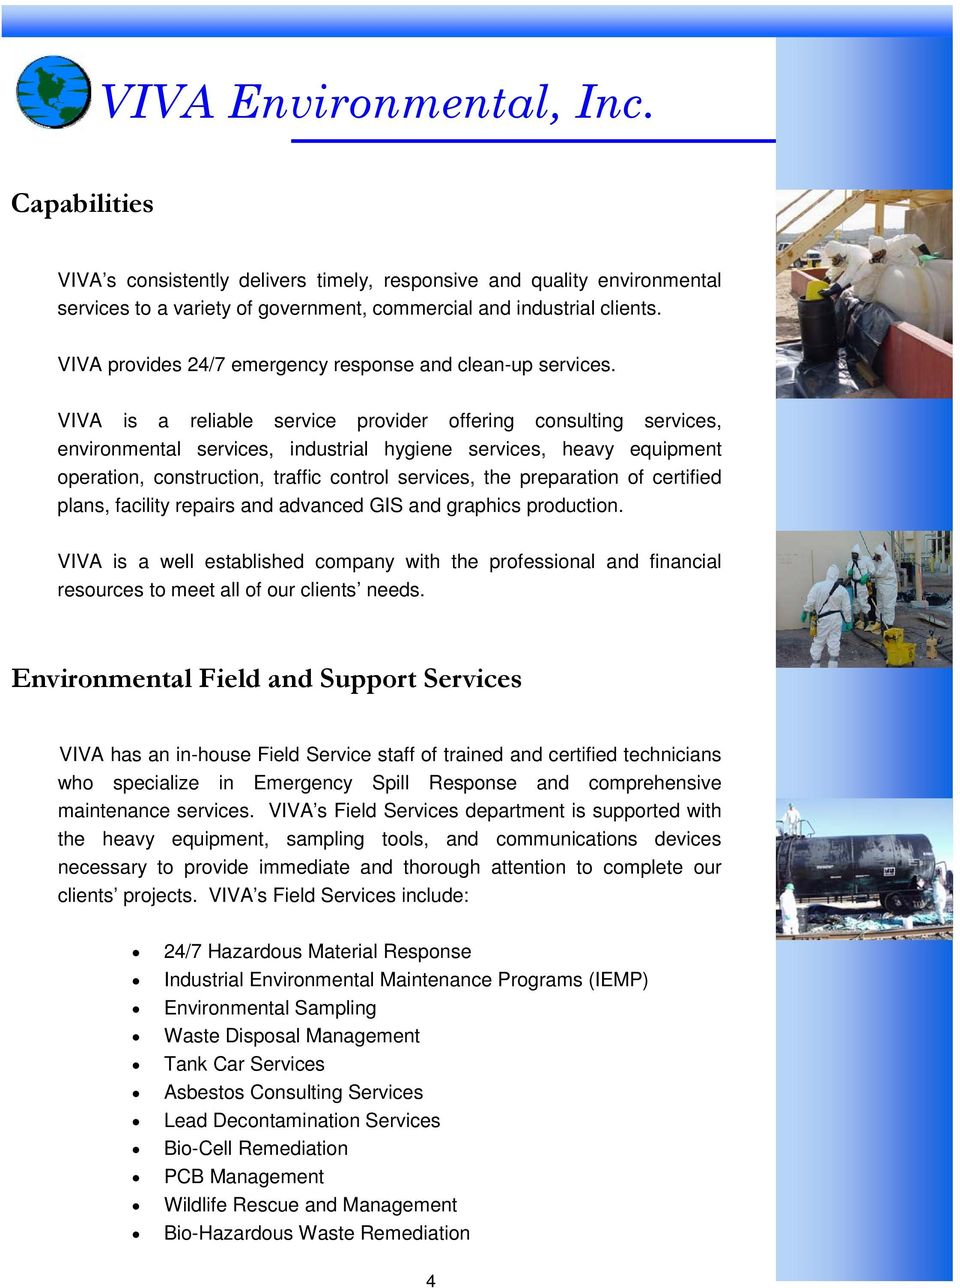 VIVA is a reliable service provider offering consulting services, environmental services, industrial hygiene services, heavy equipment operation, construction, traffic control services, the